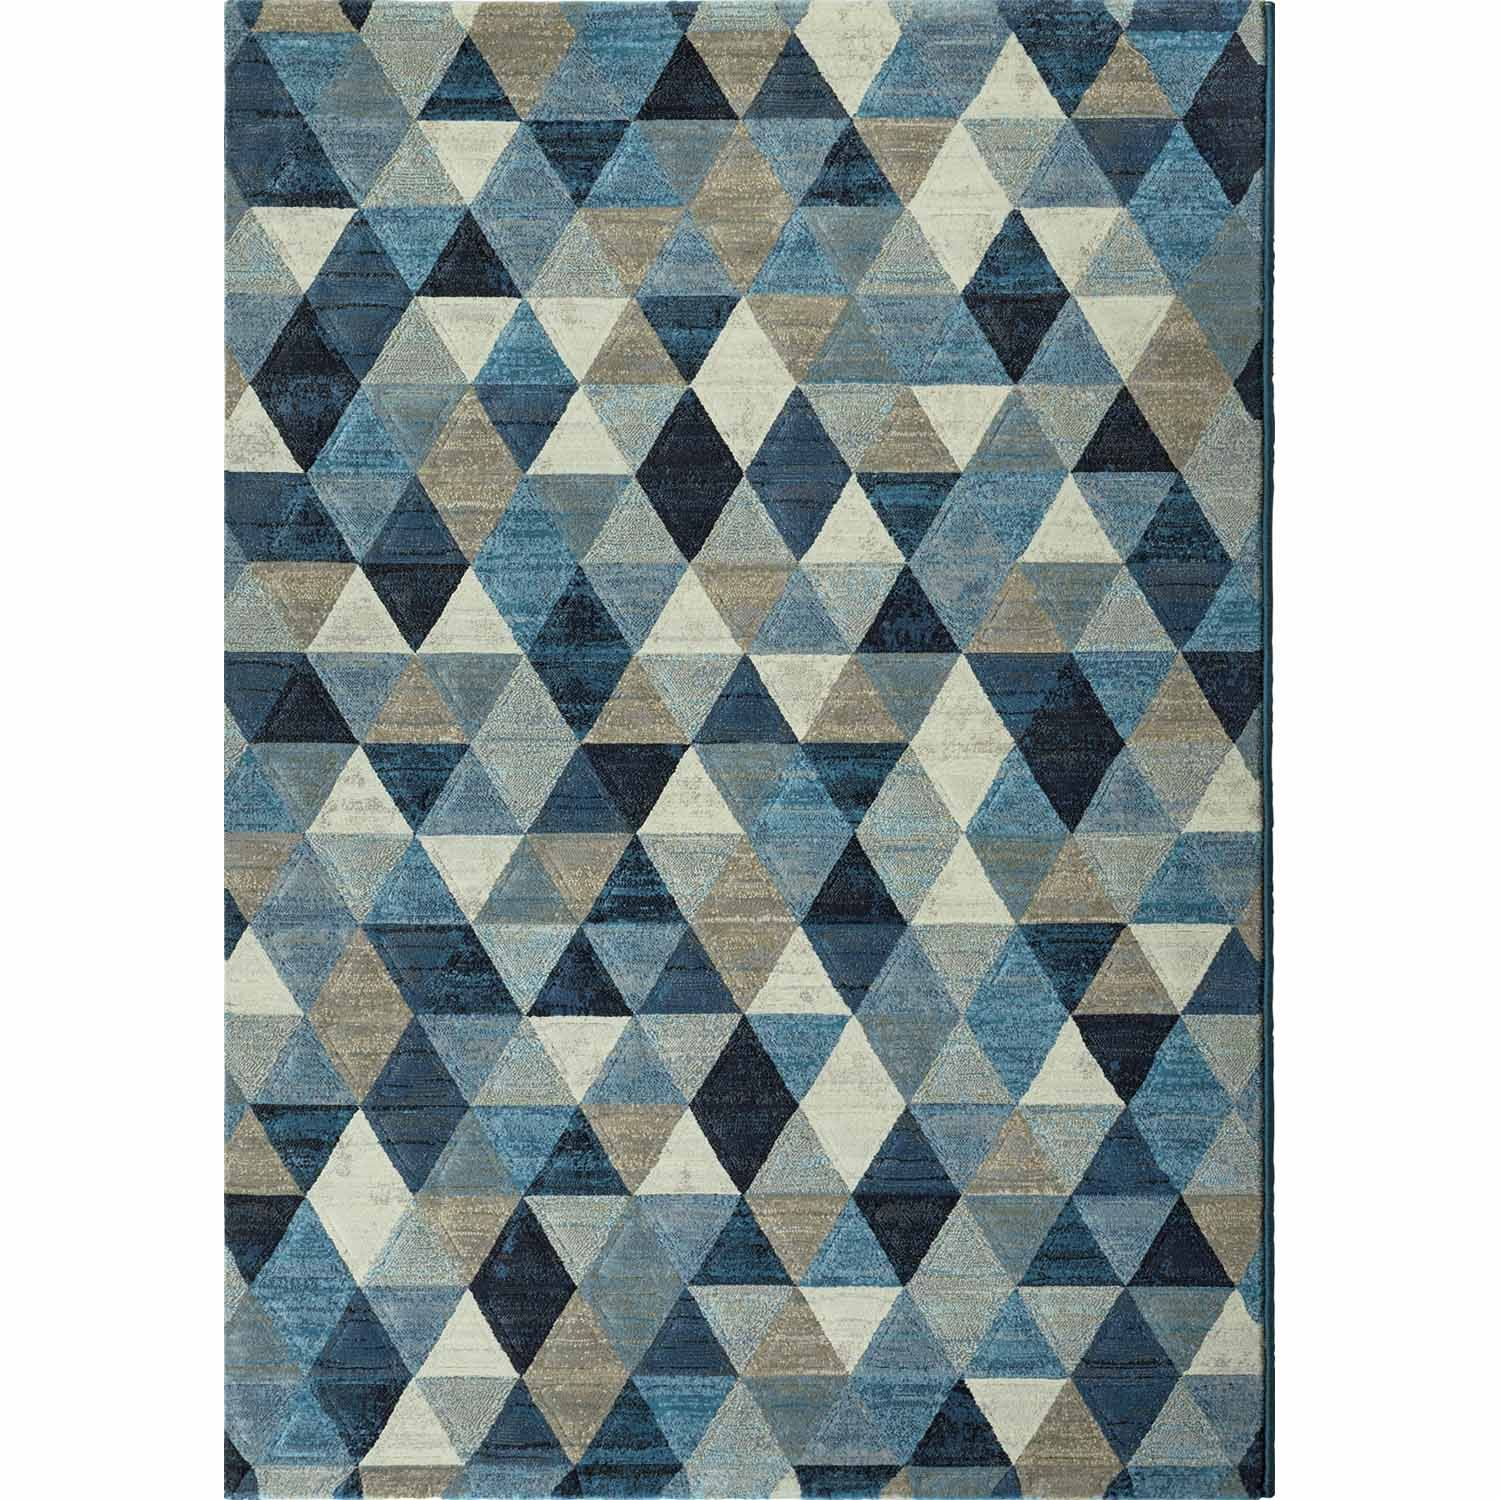 Blue Triangles Modern Rug Contemporary Style And High Quality At My Italian Living